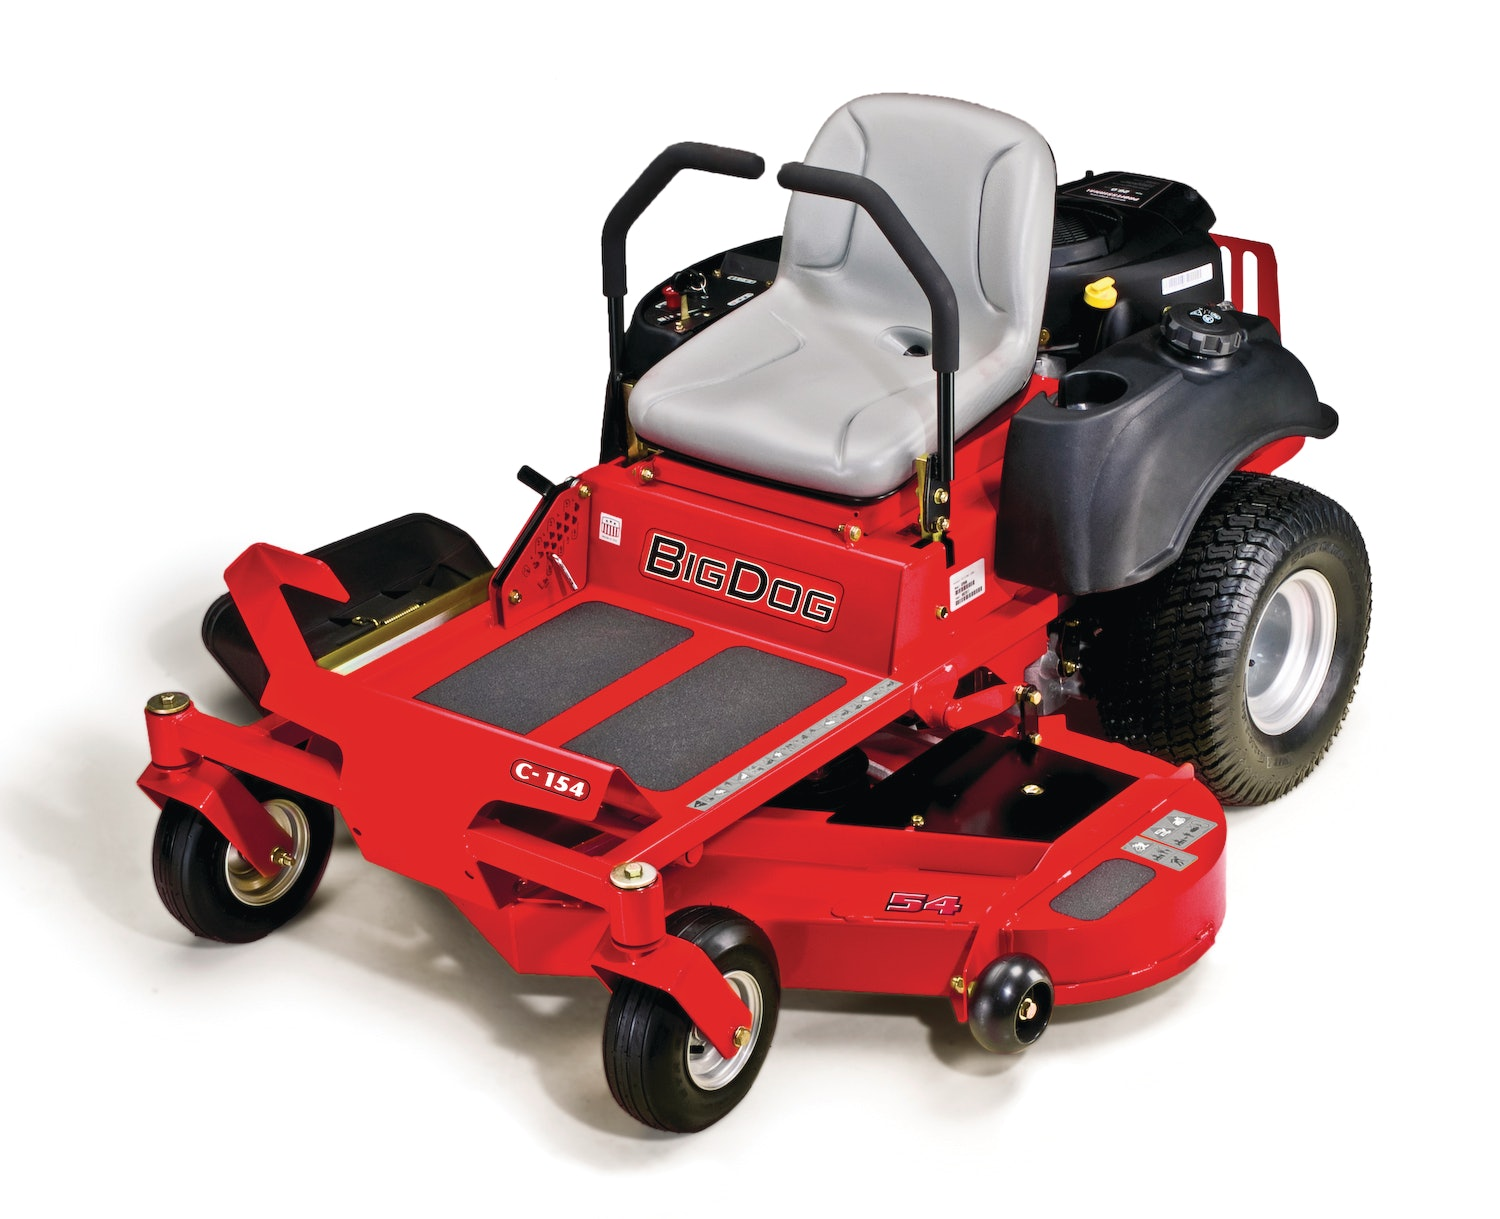 What Is The Right Way Of Using Big Dog Zero Turn Mowers?